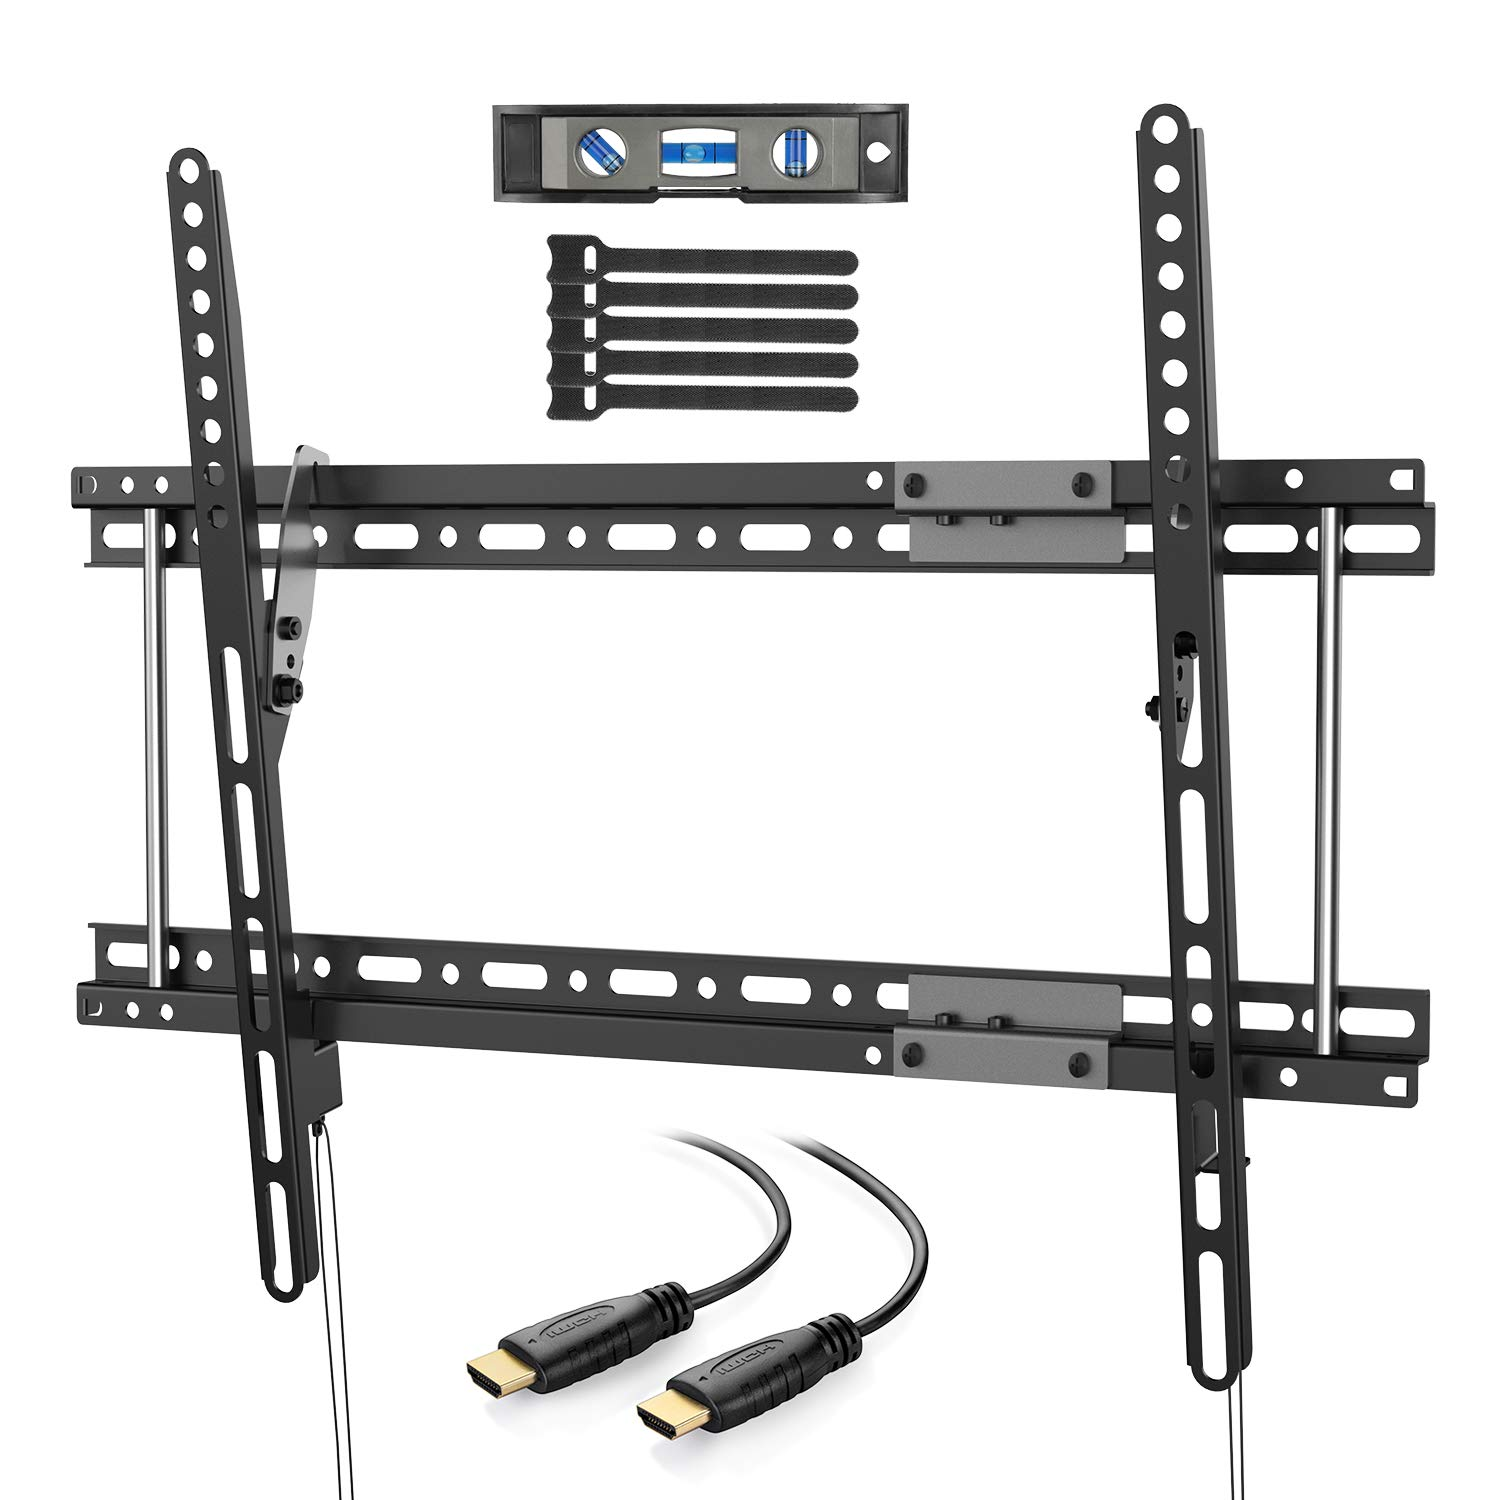 PERLESMITH PSLTK2 Tilting TV Wall Mount Bracket Fits for 16'',18'',24'' Studs, Low Profile Tilt TV Mount for Most 37-70 Inch LED, LCD, OLED, Plasma Flat Screen TVs with VESA up to 600x400mm 132lbs by PERLESMITH